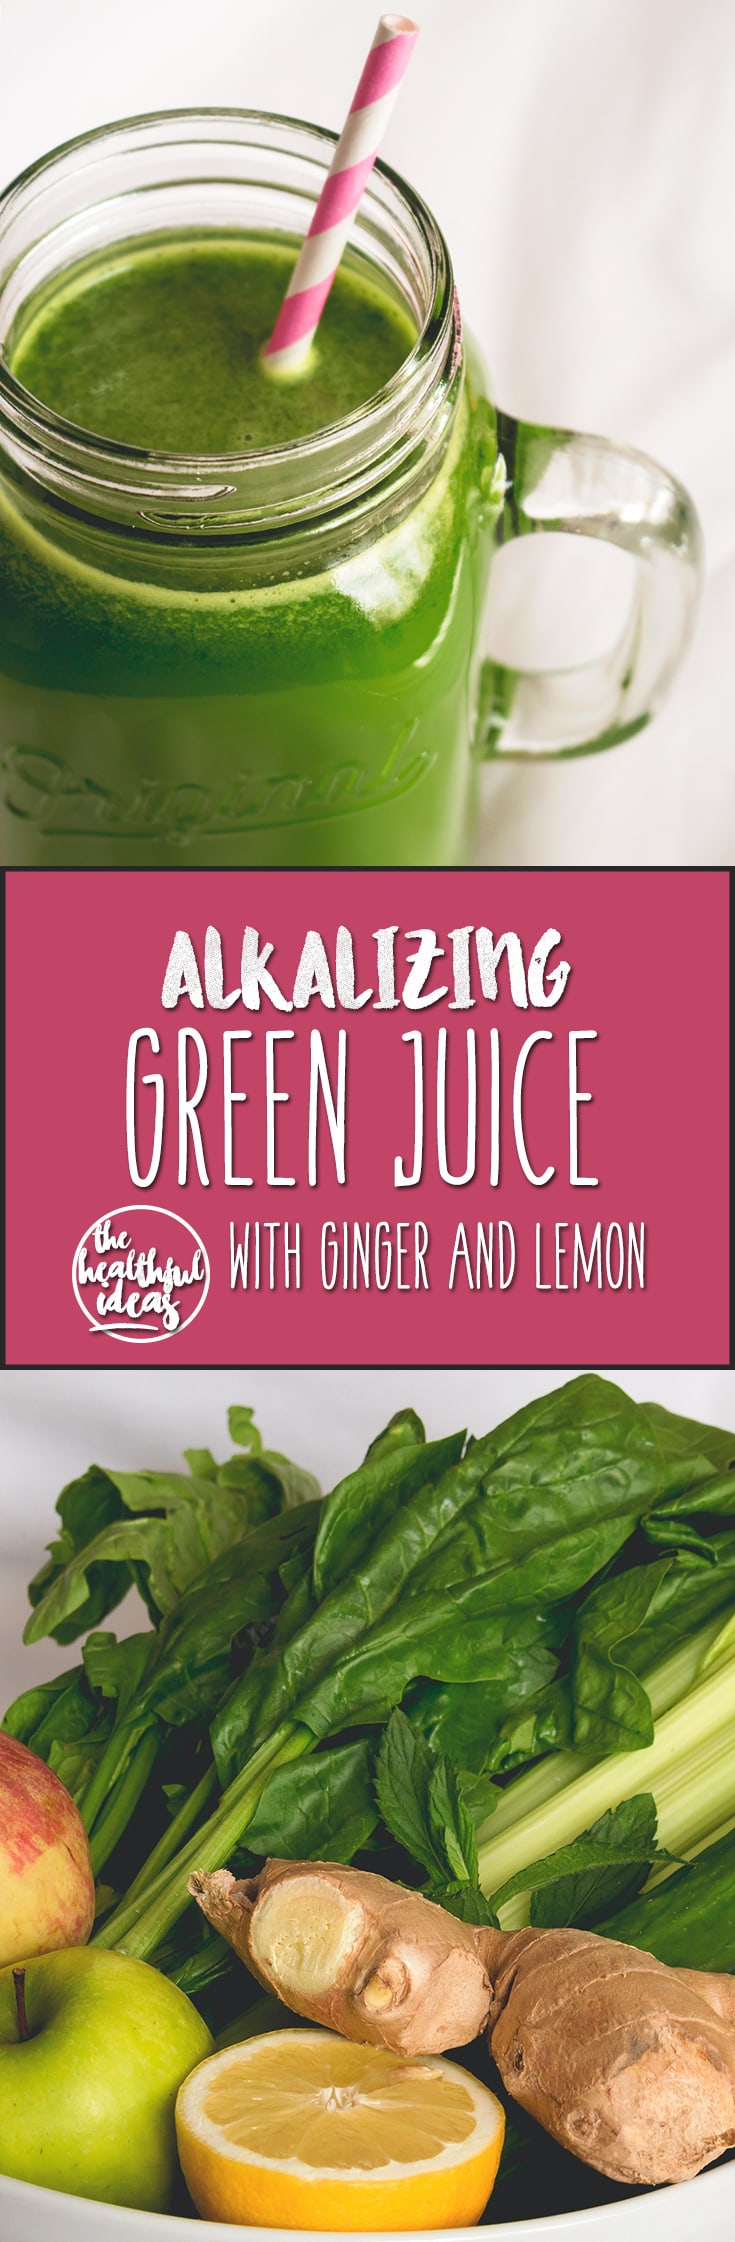 Green Juice with Ginger - delicious alkalizing green juice with ginger and lemon. Full of amazing vitamins and minerals your body craves! One green juice a day keeps the doctor away. I love this recipe! | thehealthfulideas.com